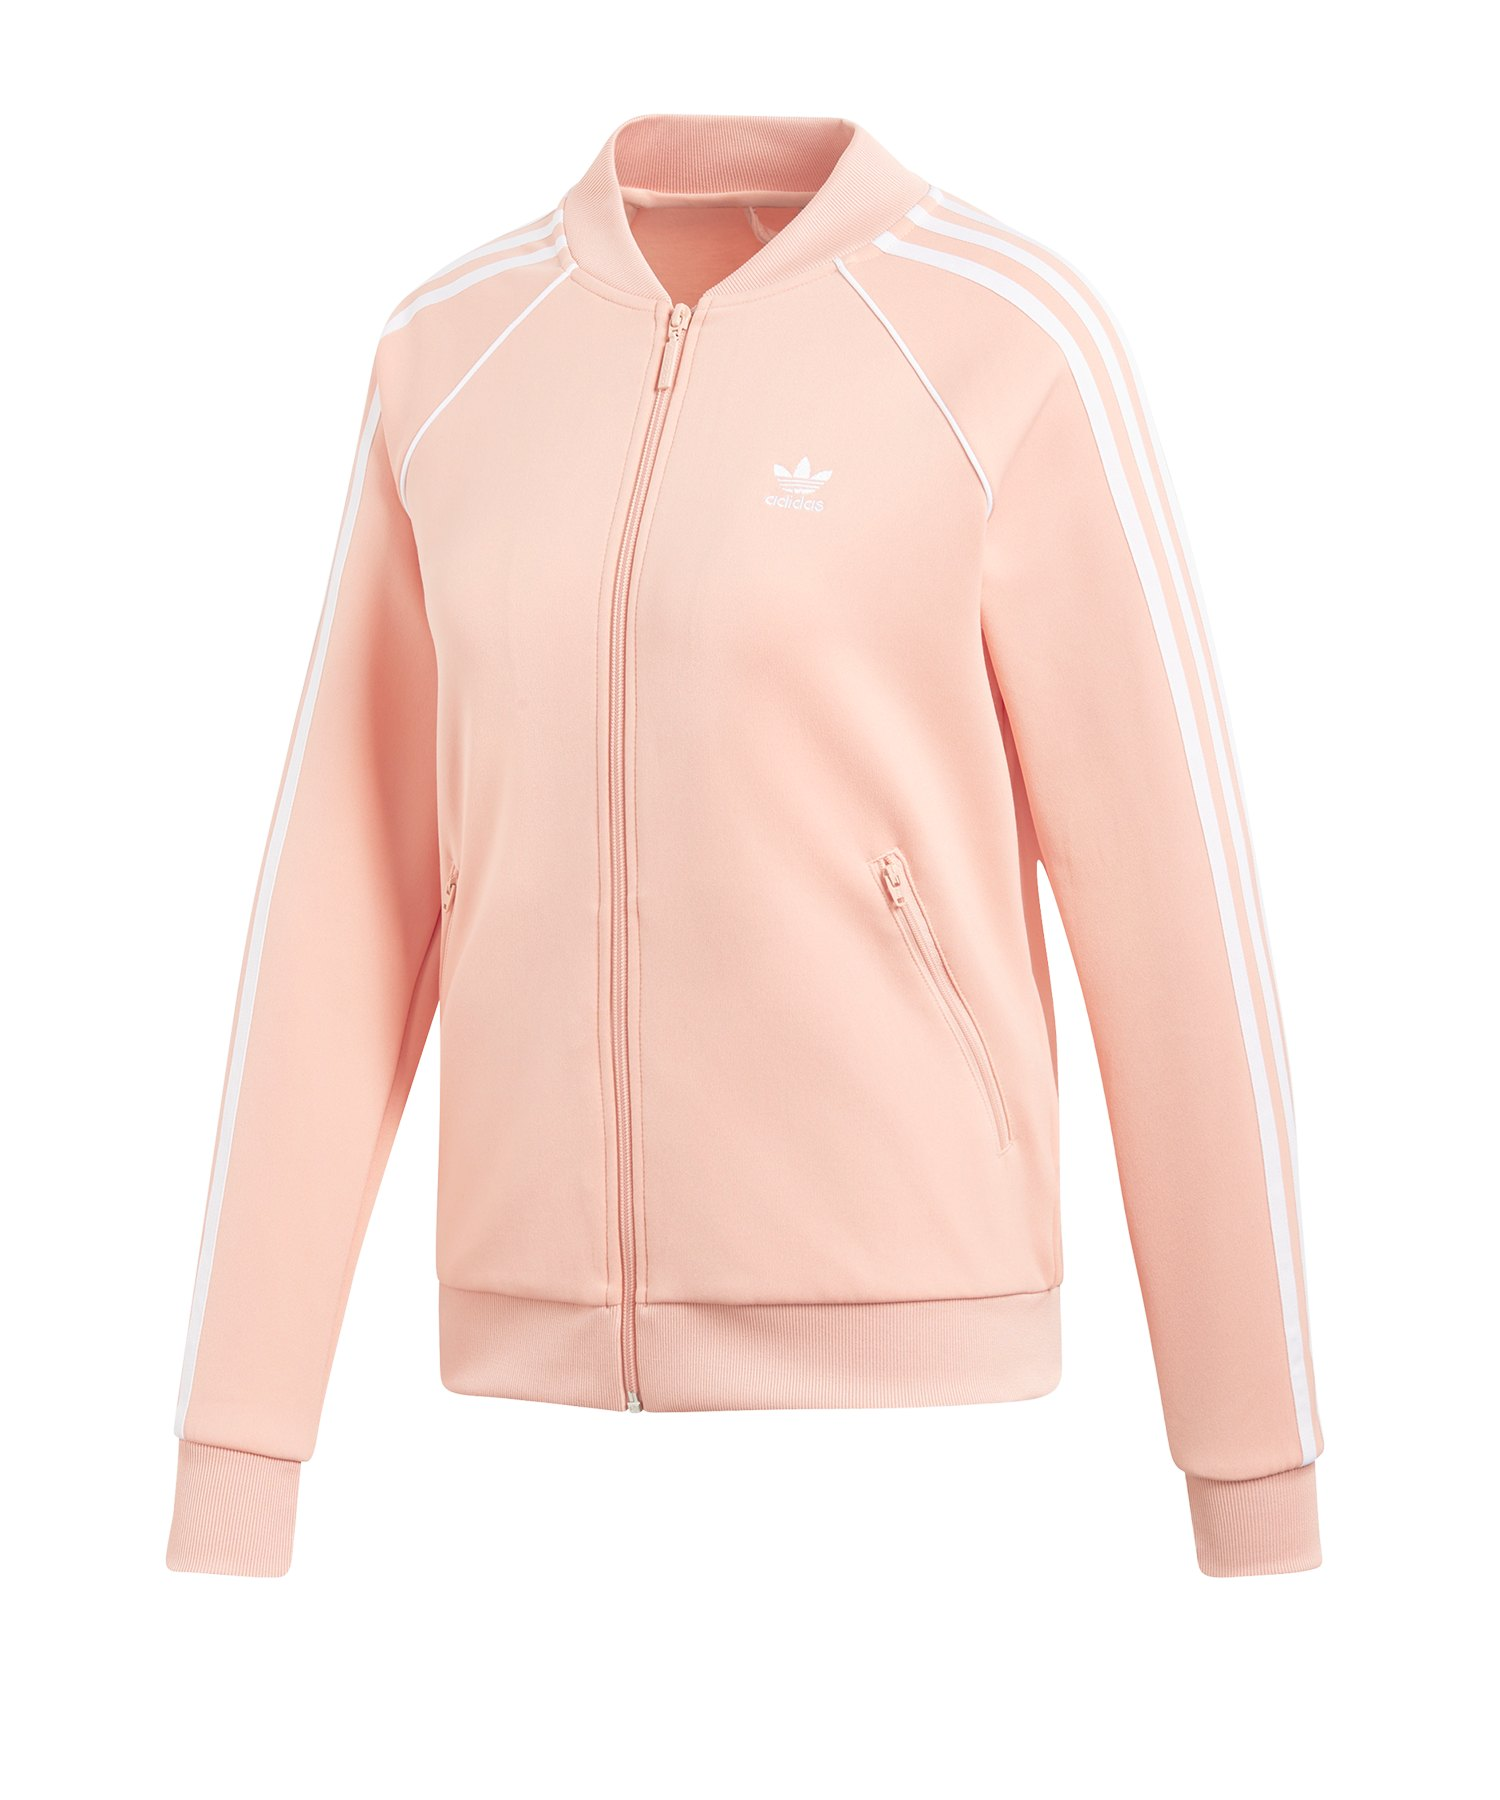 adidas Originals SST Track Top Jacke Damen Rosa